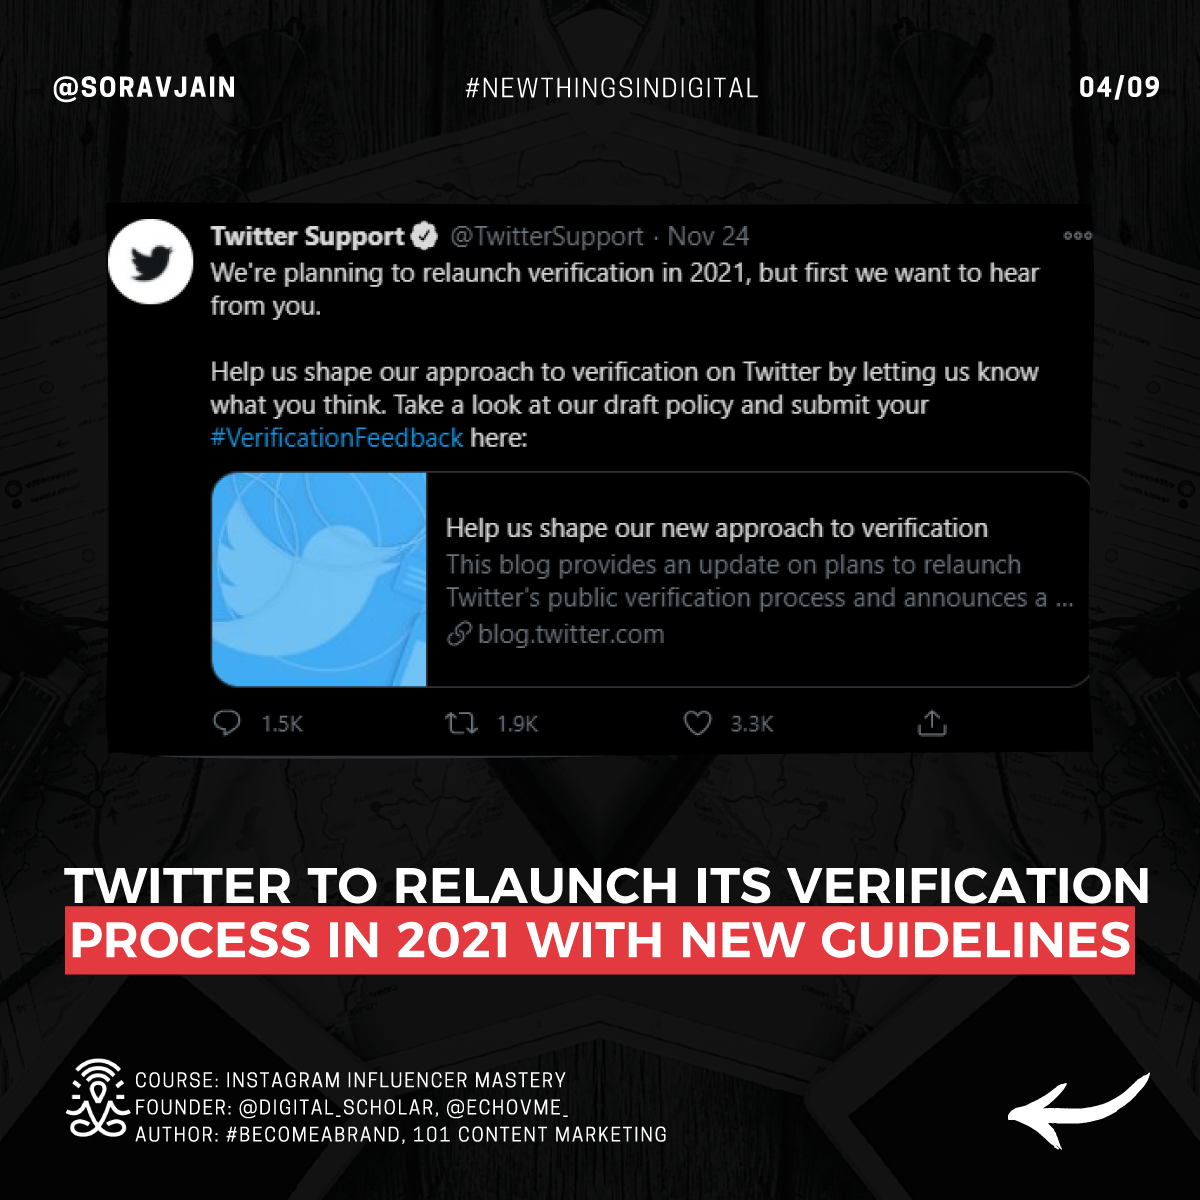 Twitter to relaunch its verification process in 2021 with new guidelines